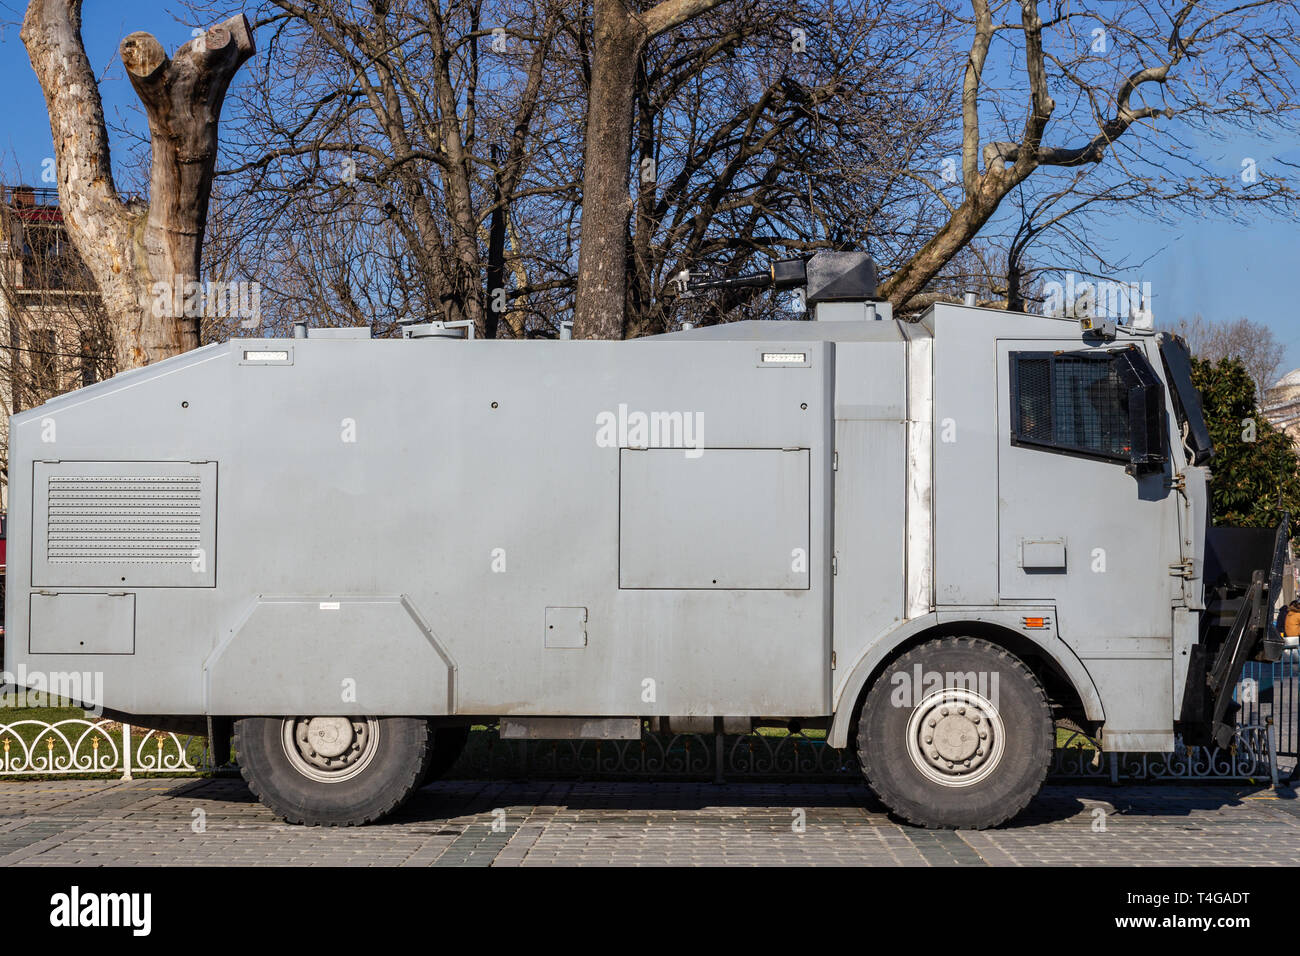 Police water cannon vehicle for social events and riot control - Stock Image